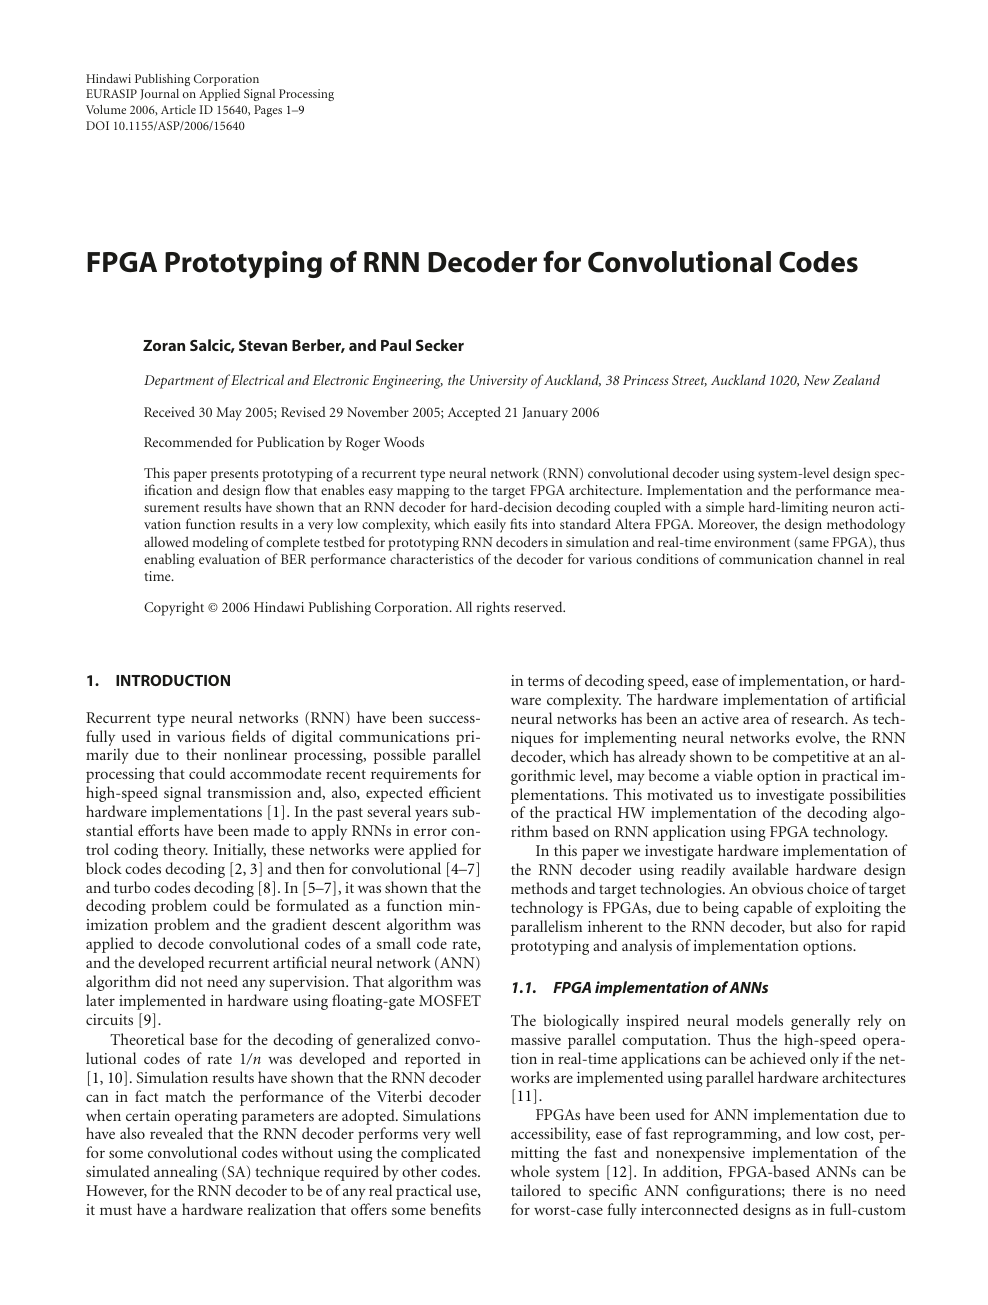 FPGA Prototyping of RNN Decoder for Convolutional Codes – topic of